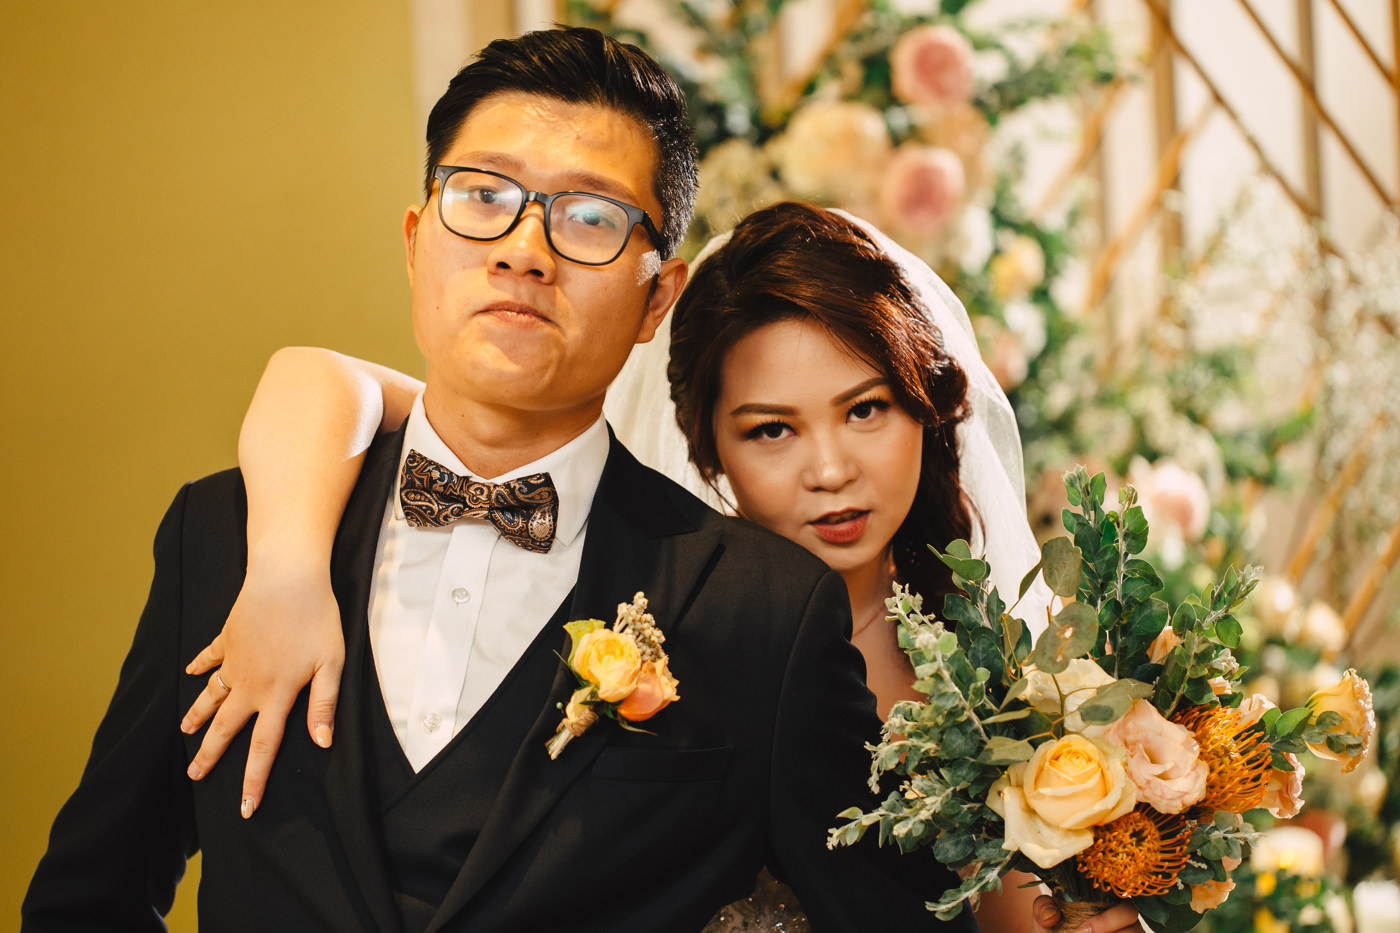 Anh + Uyen's Real Wedding | Saigon, Vietnam